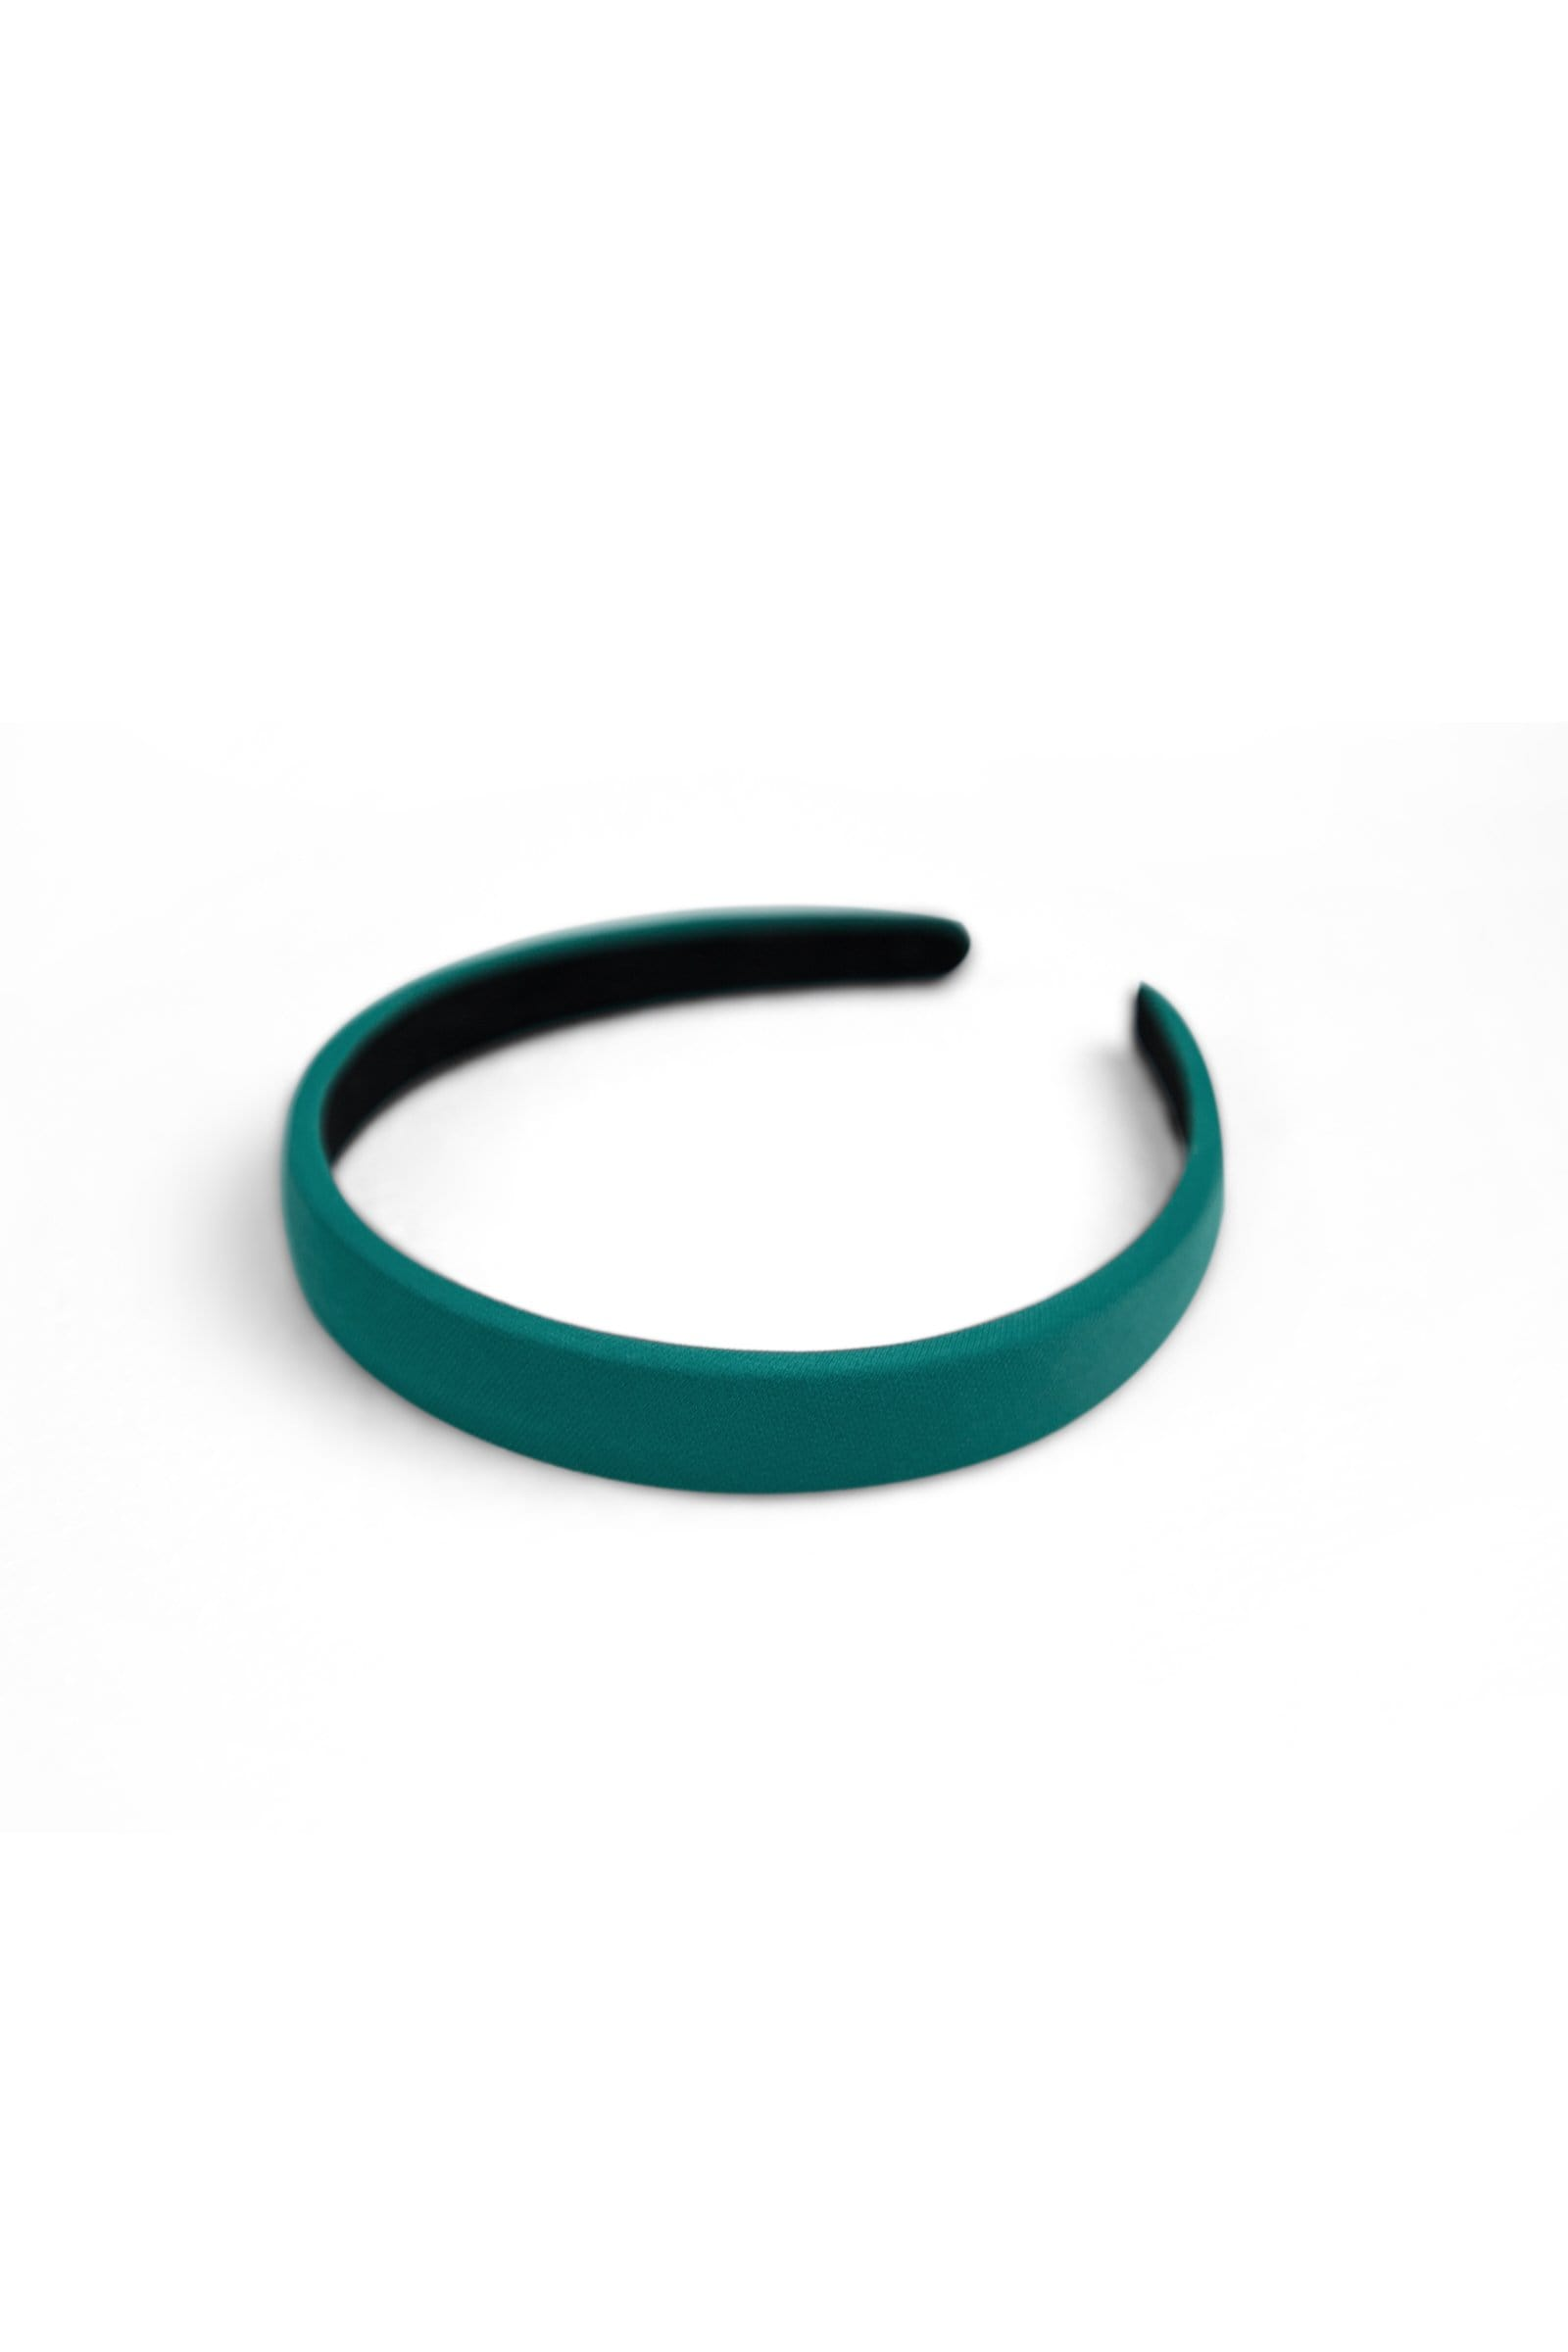 Satin Teal Headband